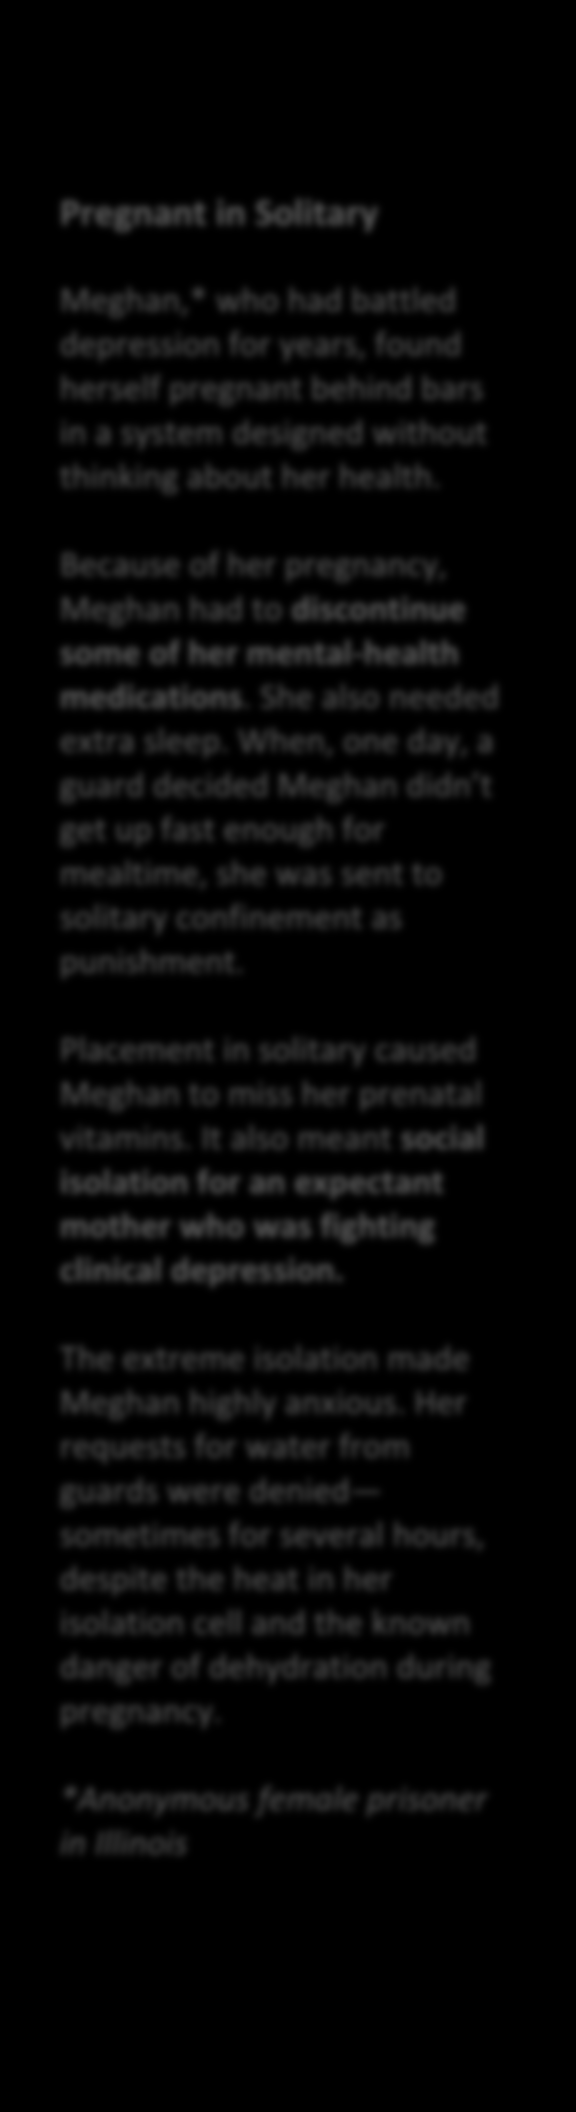 Pregnant in Solitary Meghan,* who had battled depression for years, found herself pregnant behind bars in a system designed without thinking about her health.